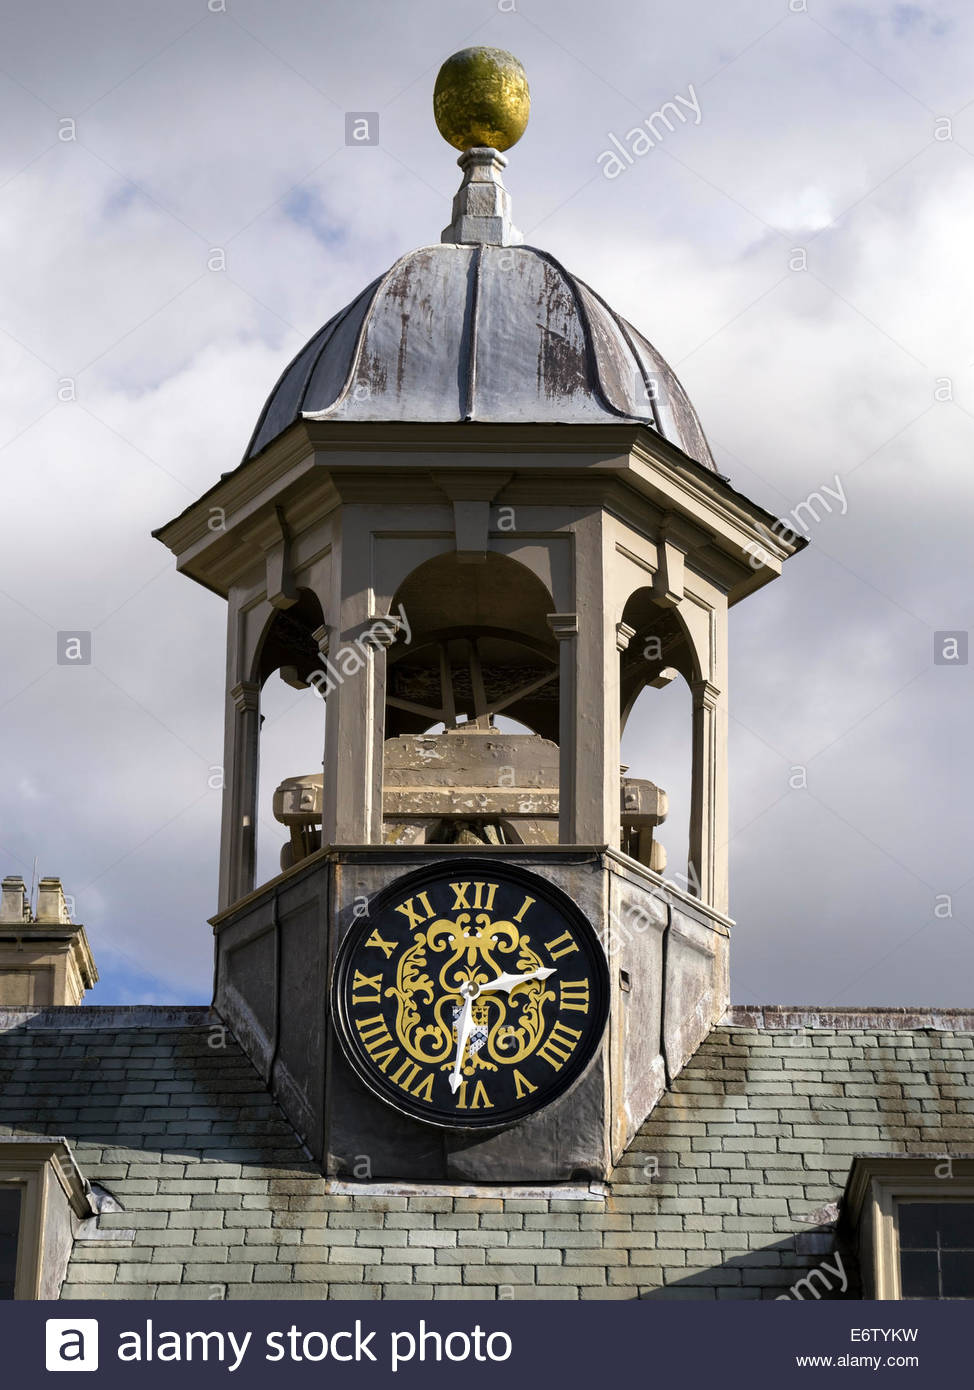 Old hexagonal clock and bell tower on slate tiled roof, Belton House, Grantham, Lincolnshire, England, UK - Stock Image